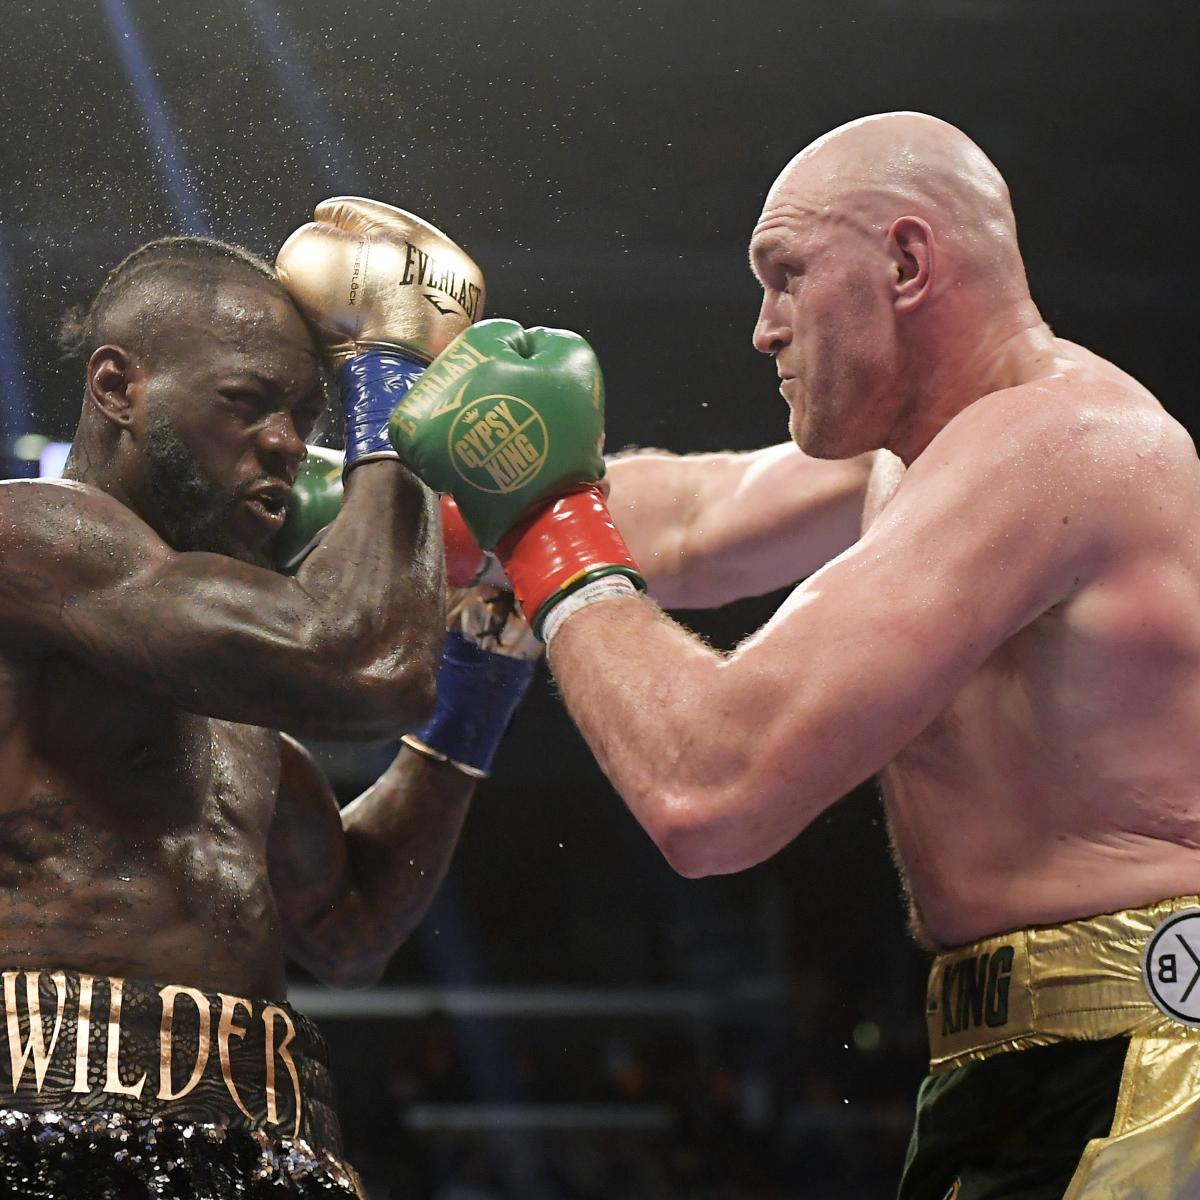 Deontay Wilder Vs. Tyson Fury 'Direct Rematch' Fight